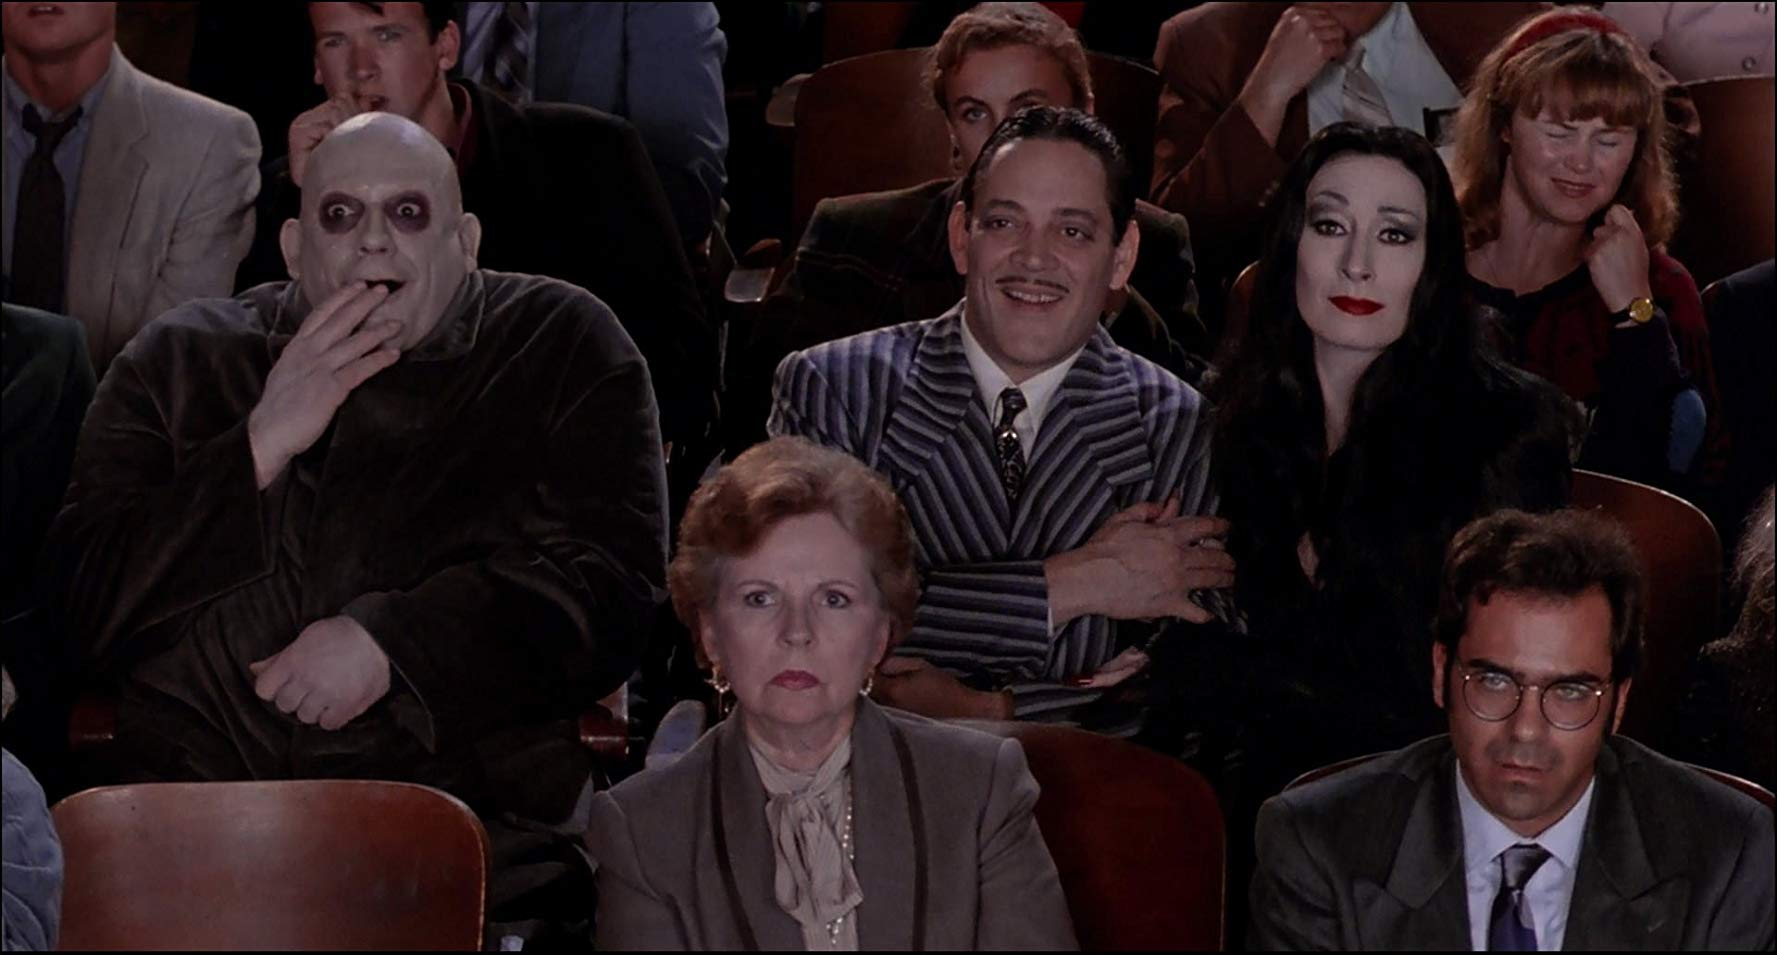 [News] THE ADDAMS FAMILY & THE ADDAMS FAMILY VALUE Arrives in a 2-Movie Collection